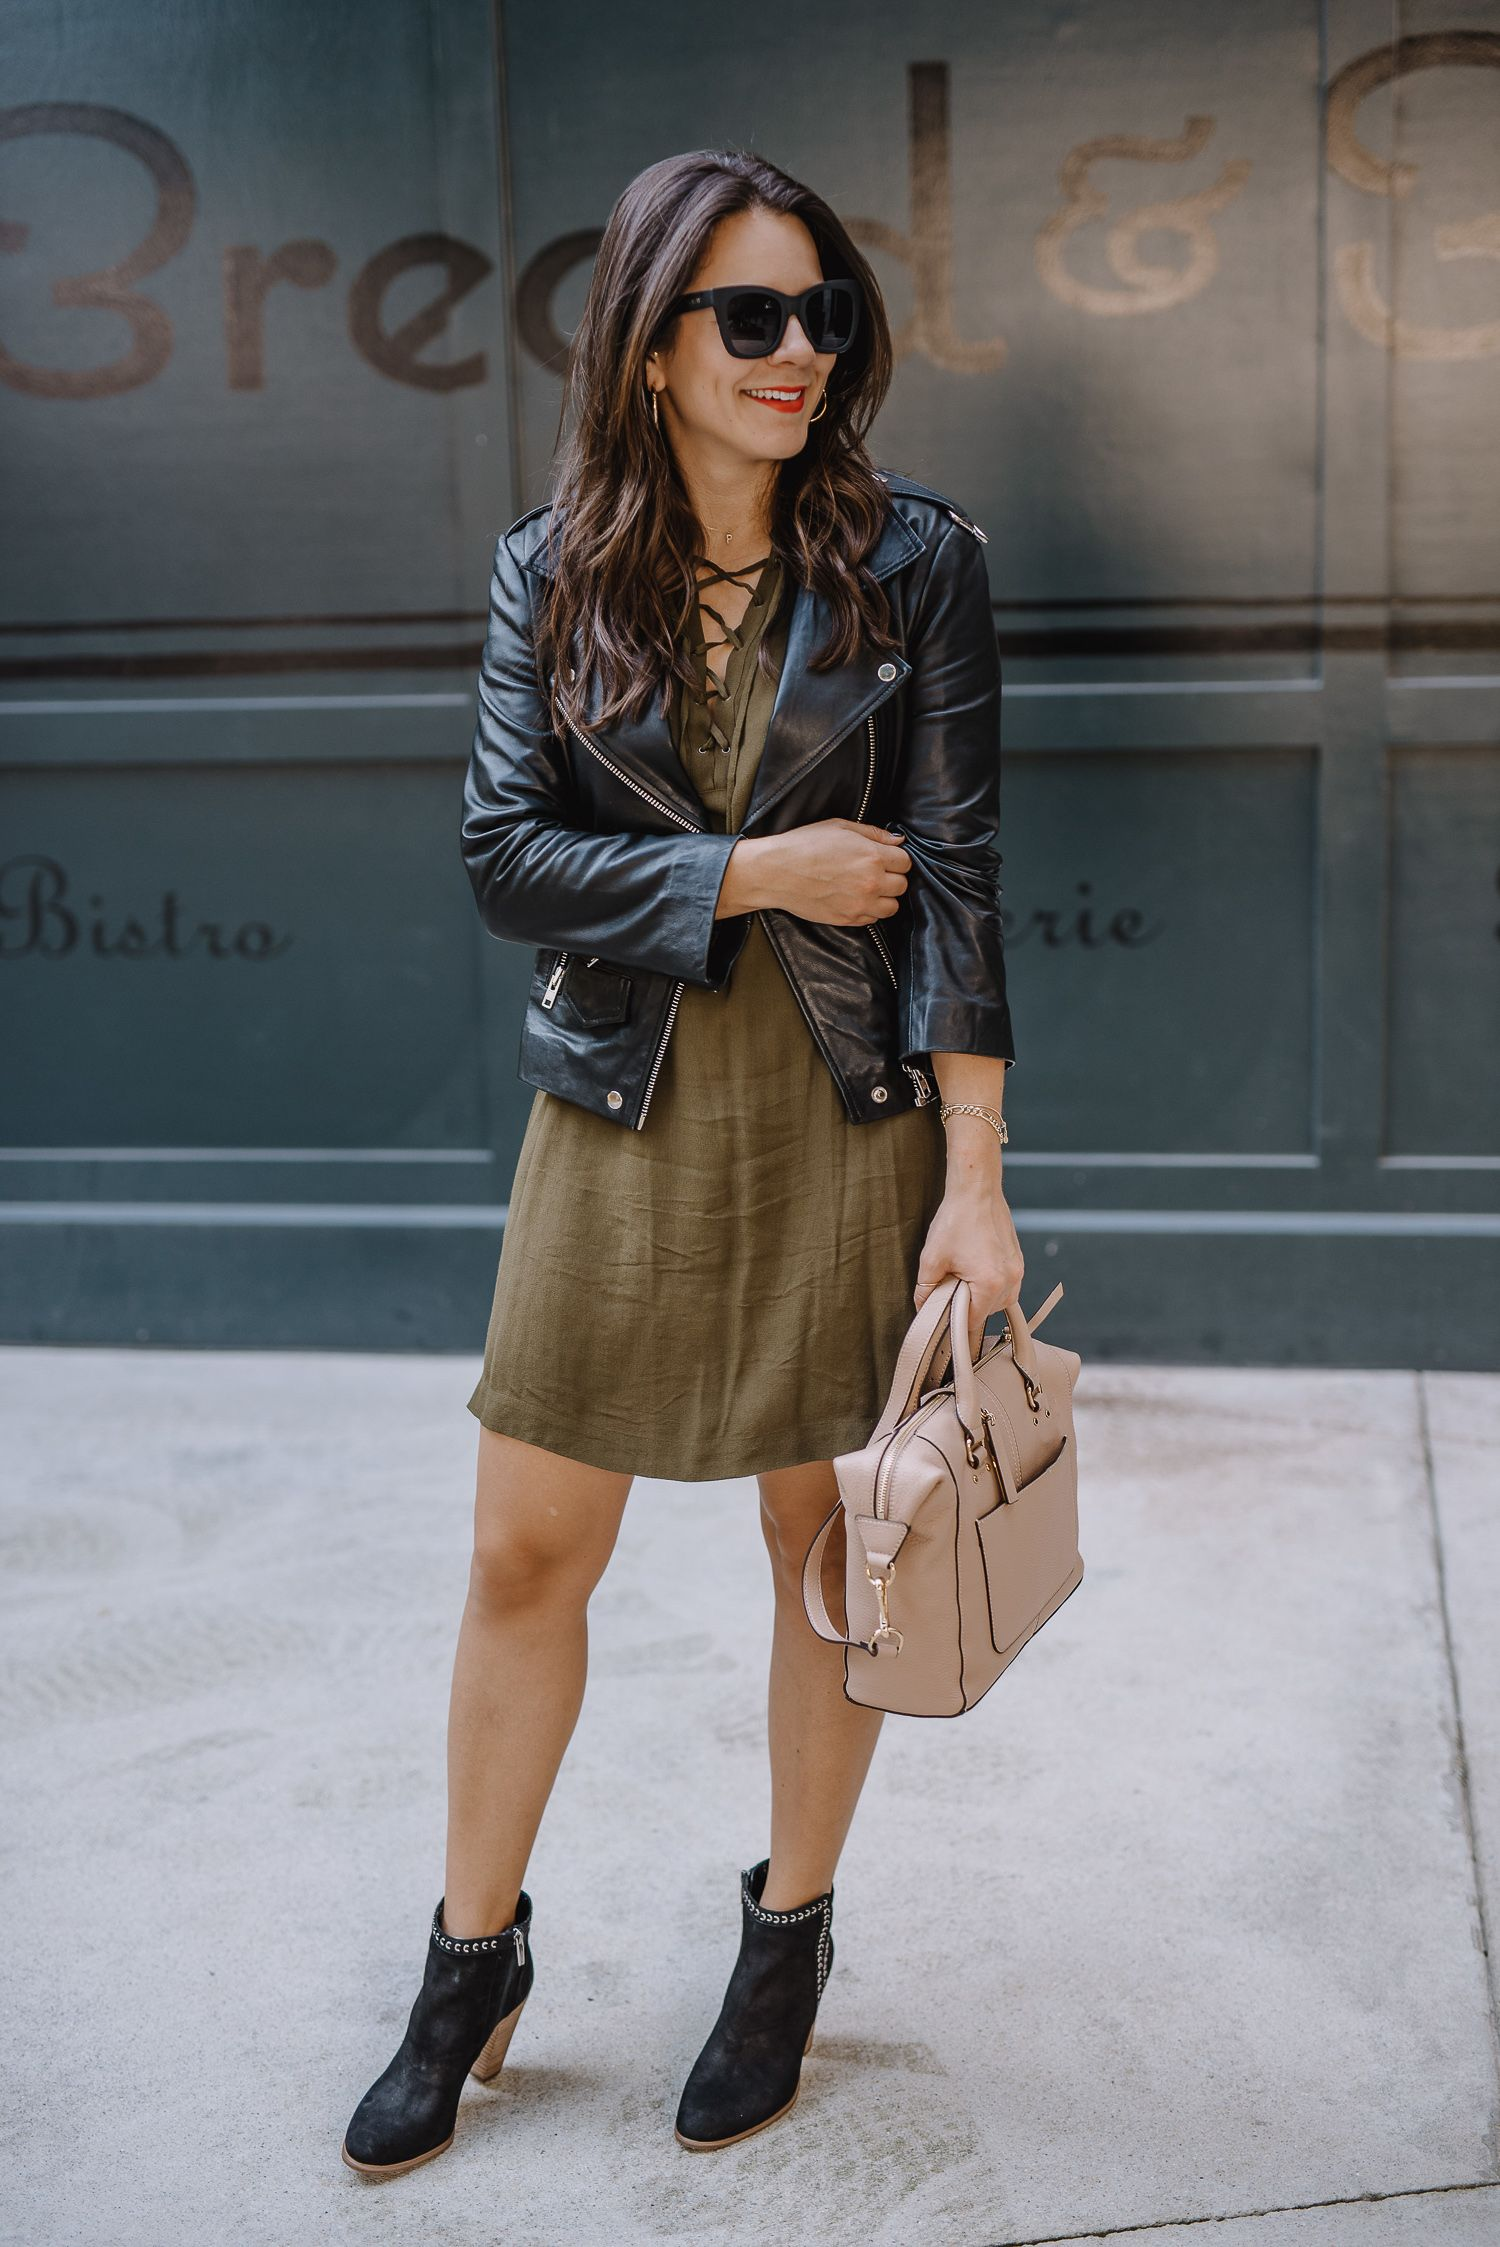 Olive Green Lace Up Mini Dress Black Ankle Heeled Boots Black Moto Leather Jacket Taup Casual Leather Jacket Outfit Leather Jacket Outfits Leather Jacket Dress [ 2247 x 1500 Pixel ]